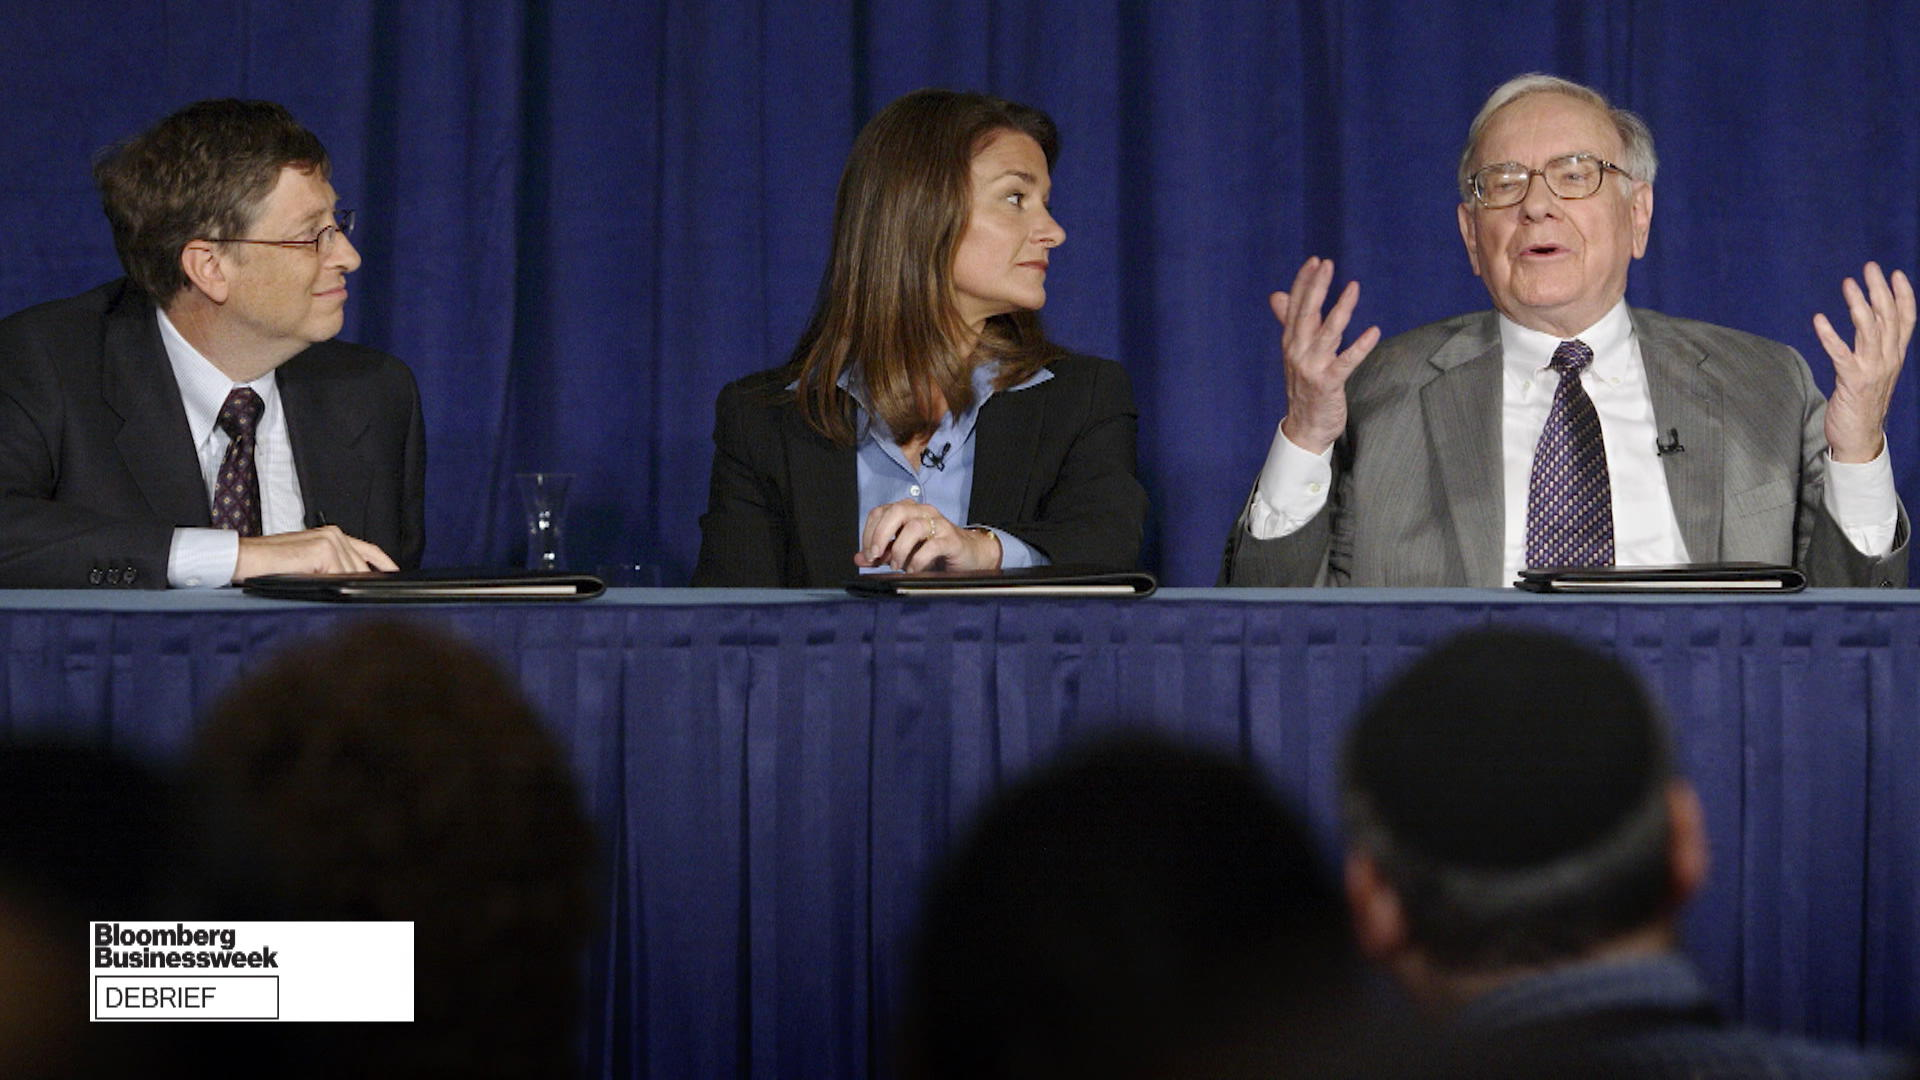 Melinda Gates on Taking Risks With Warren Buffett's Money